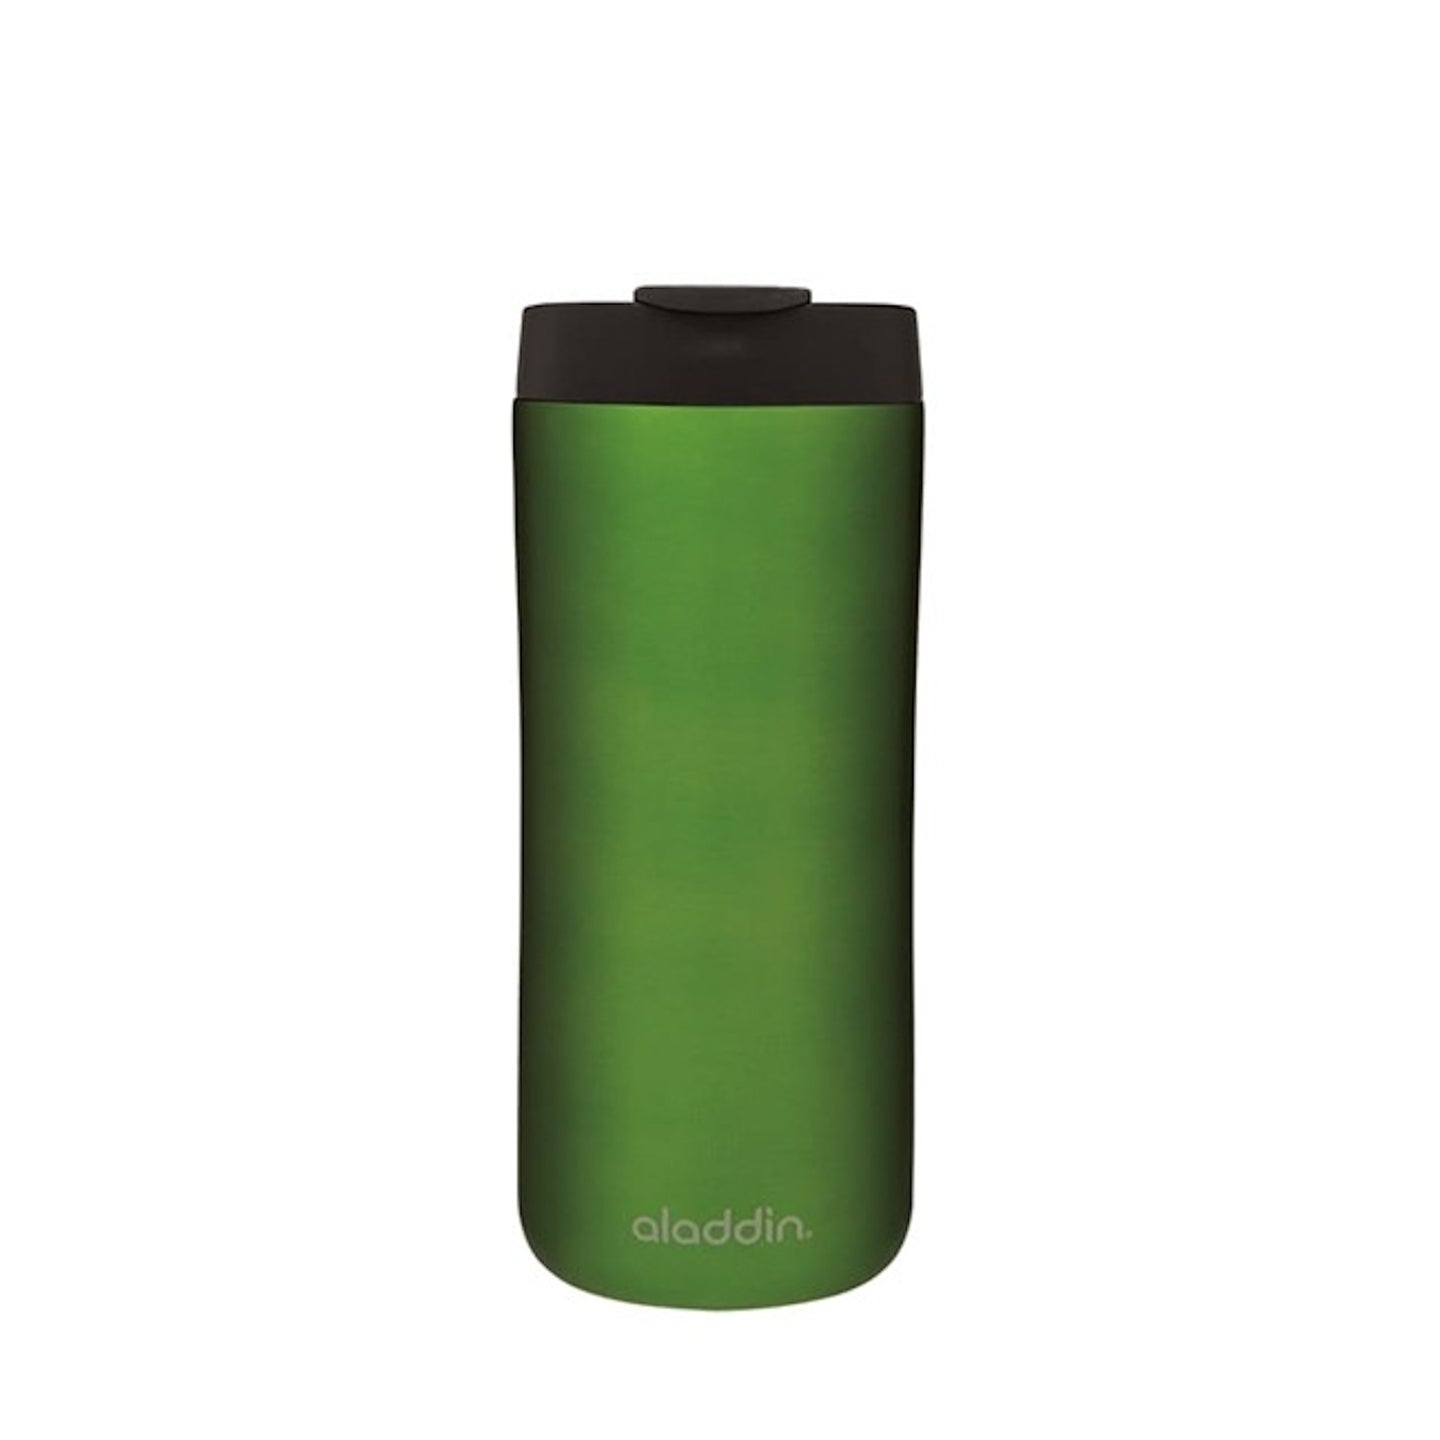 Aladdin Stainless Steel Insulated Mug / Green / 350ml